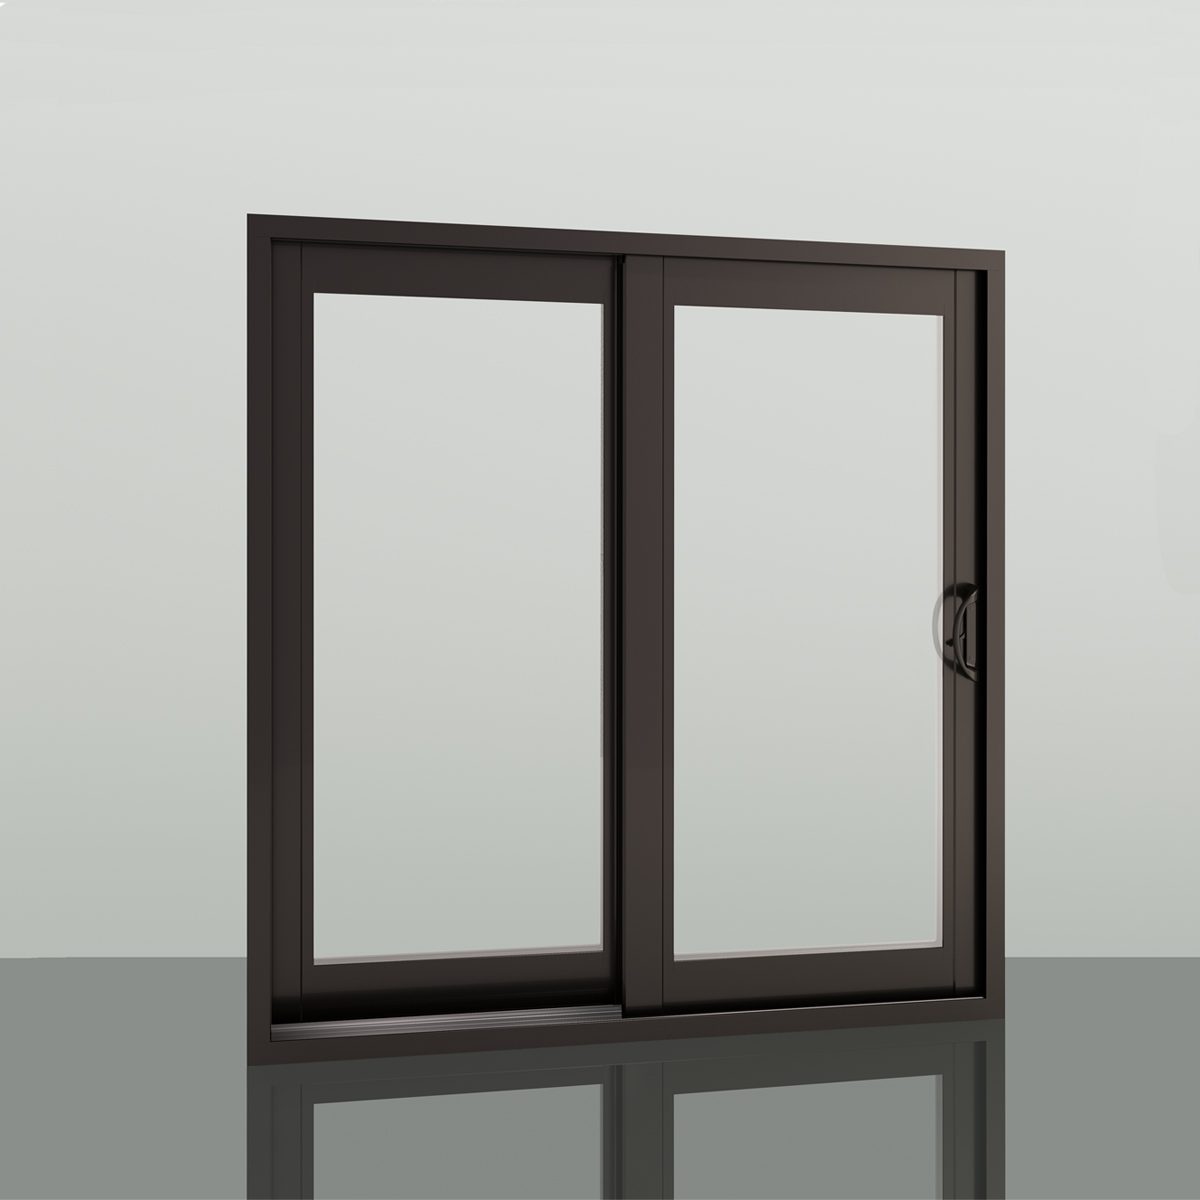 100 Series Sliding Gl Door